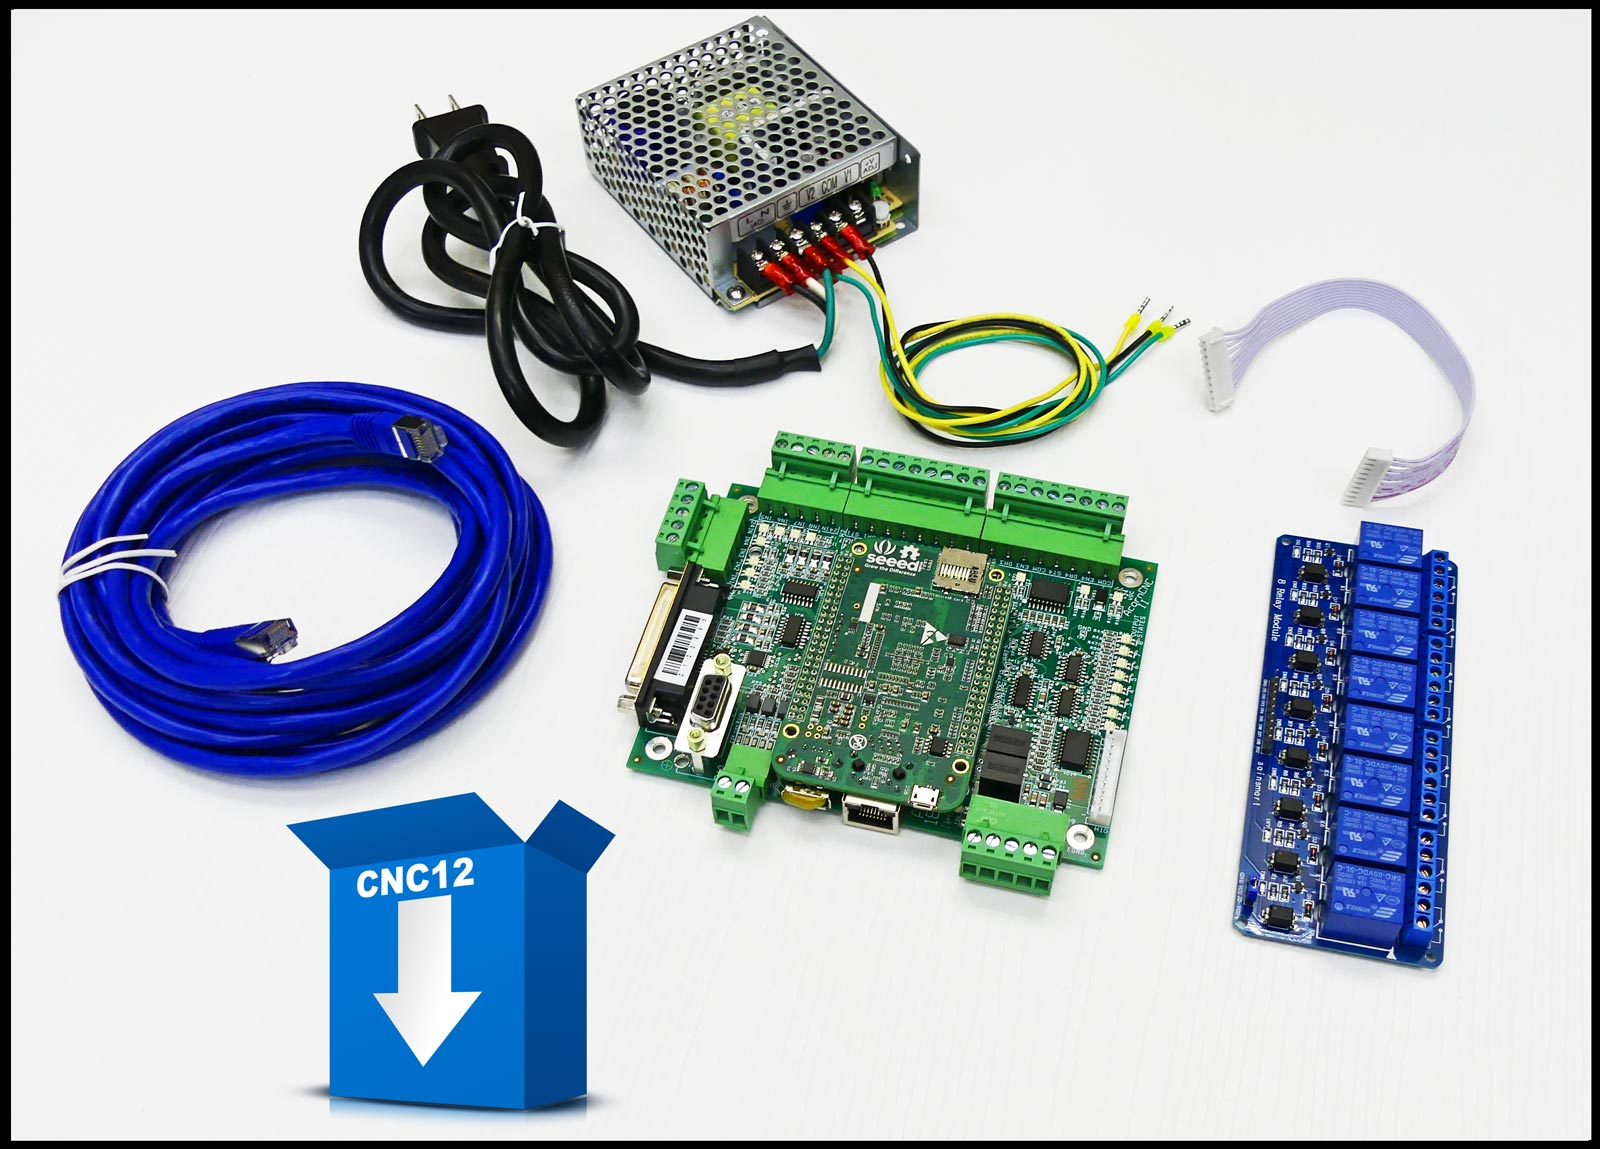 hight resolution of acorn cnc control kit